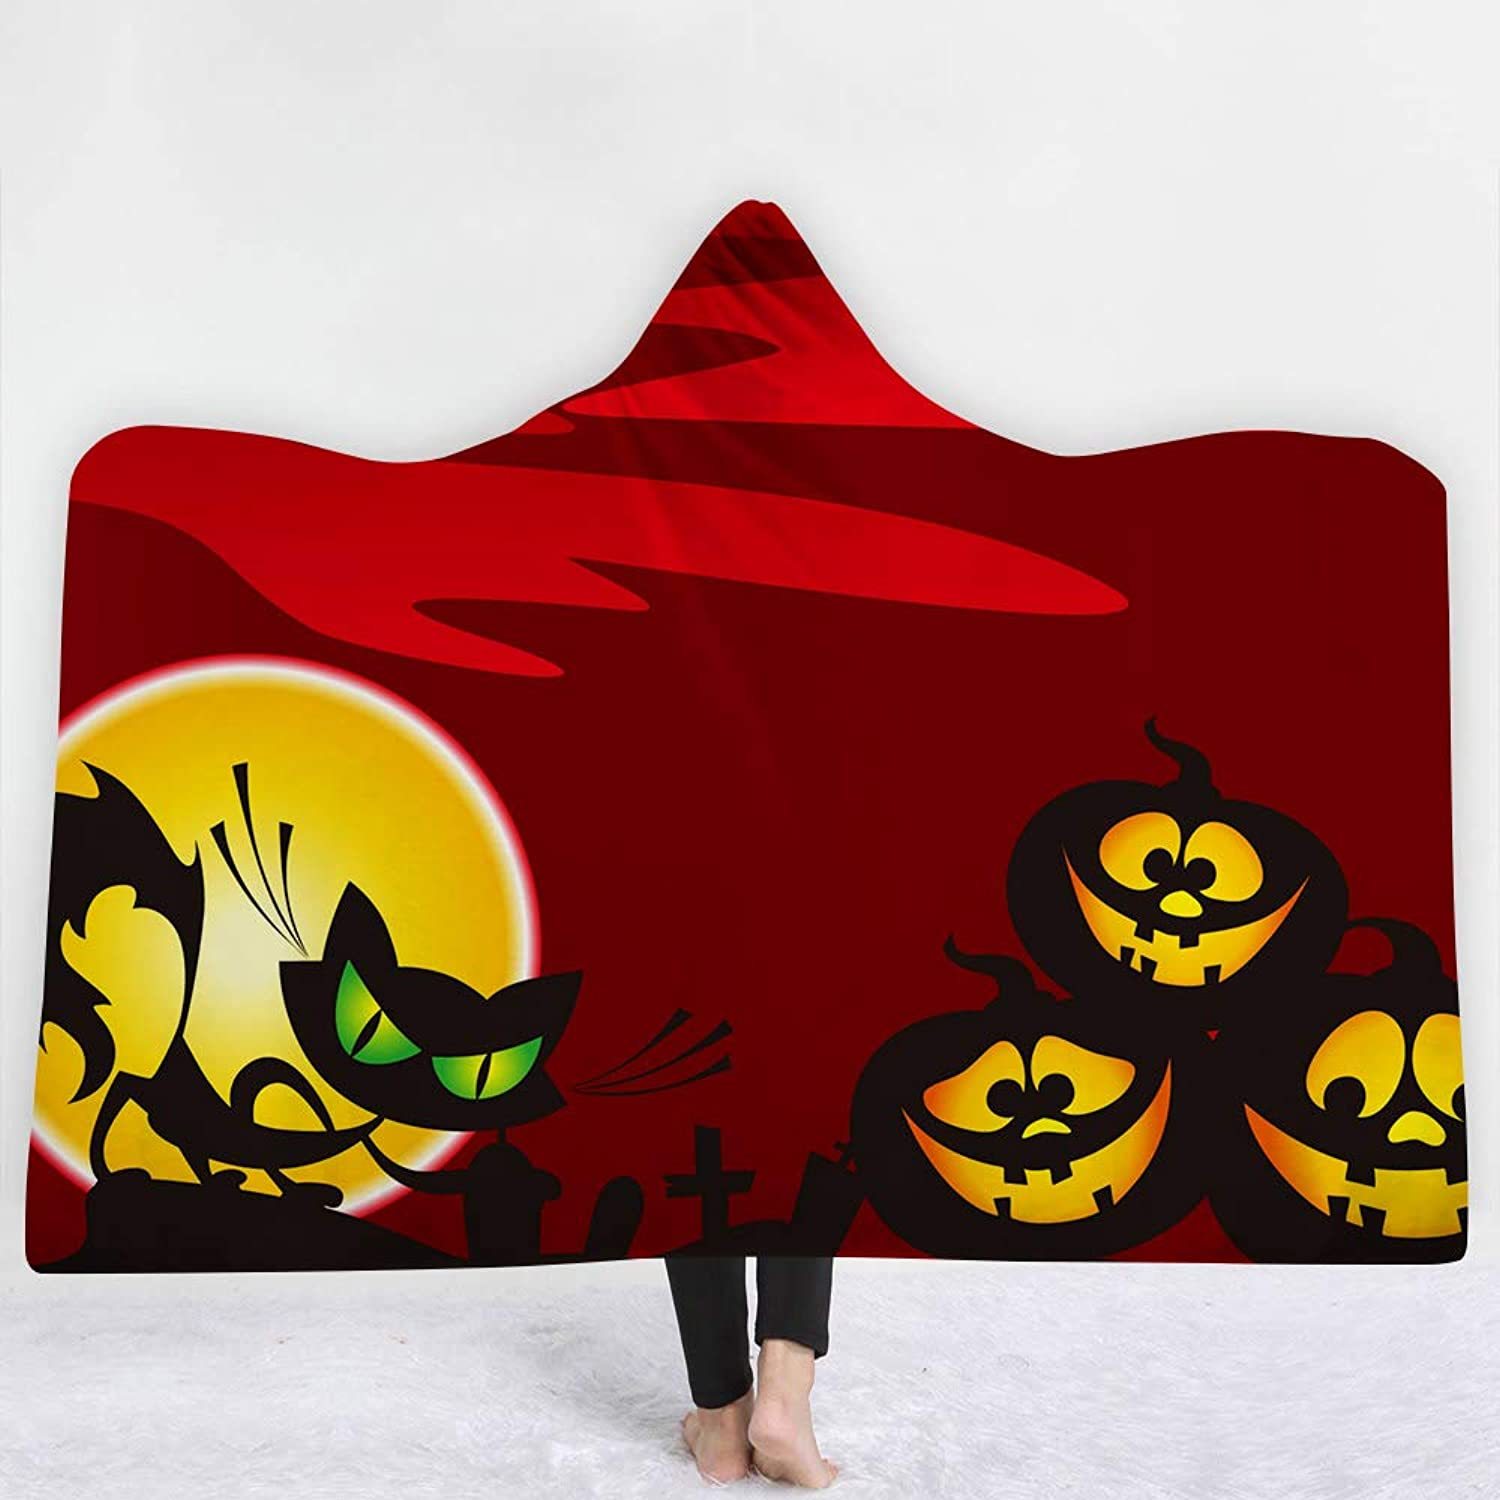 Creative Halloween Hooded Blanket Terror Pumpkin Lantern Haunted House Luxuy Thickened Hypoallergenic Sherpa Fleece Blanket Ultra Soft and Warm Winter TV Computer Throwing Blanket for Adults & Kids